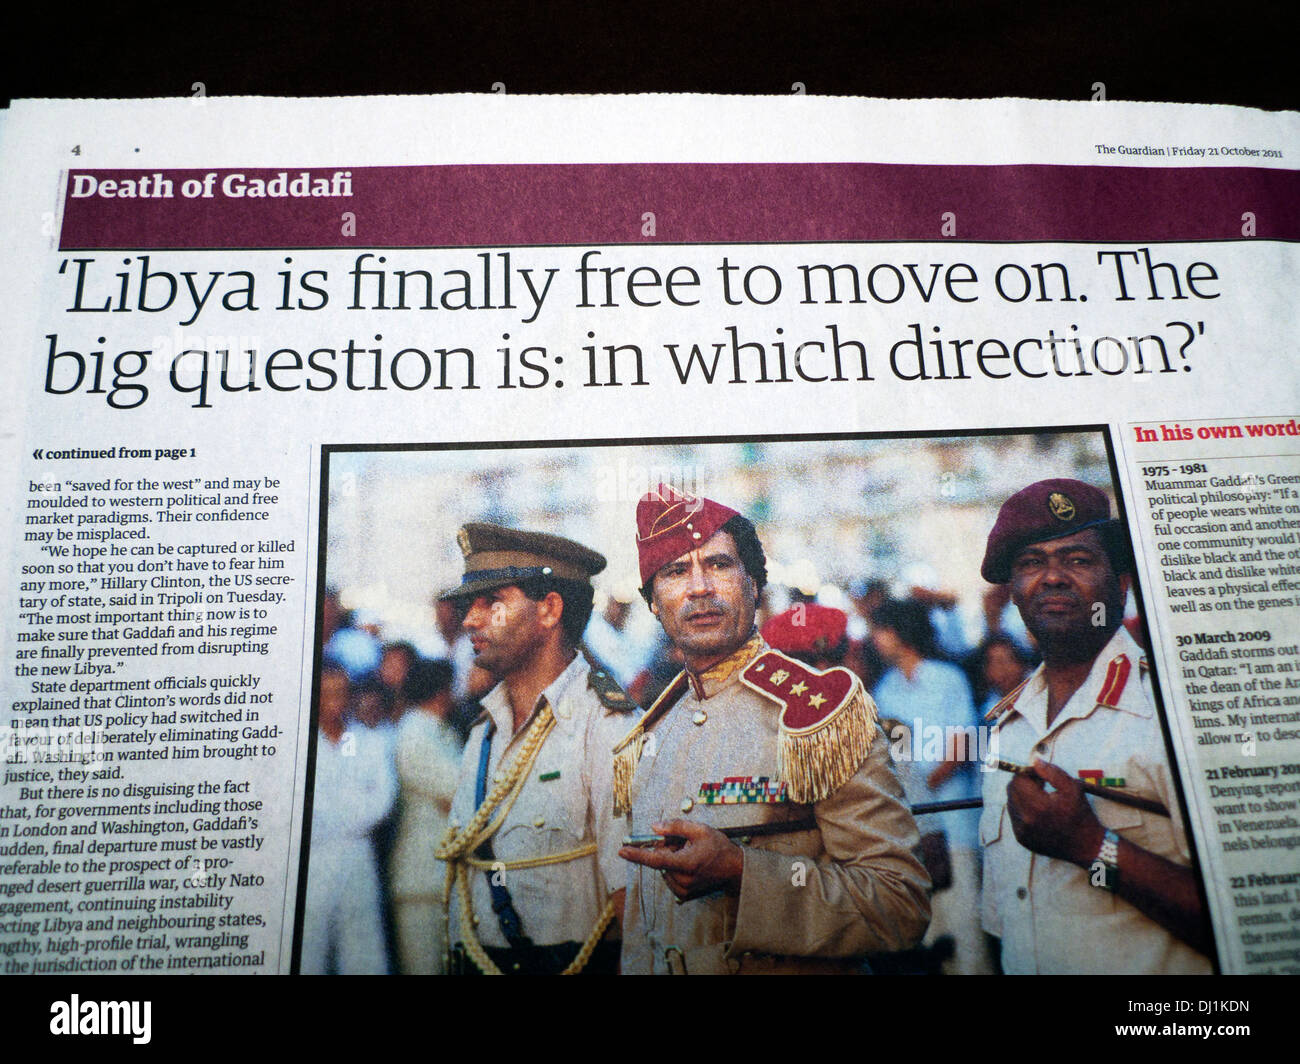 'Libya is finally free to move on. The big question is: in which direction?' article on the Death of Gaddafi - Stock Image